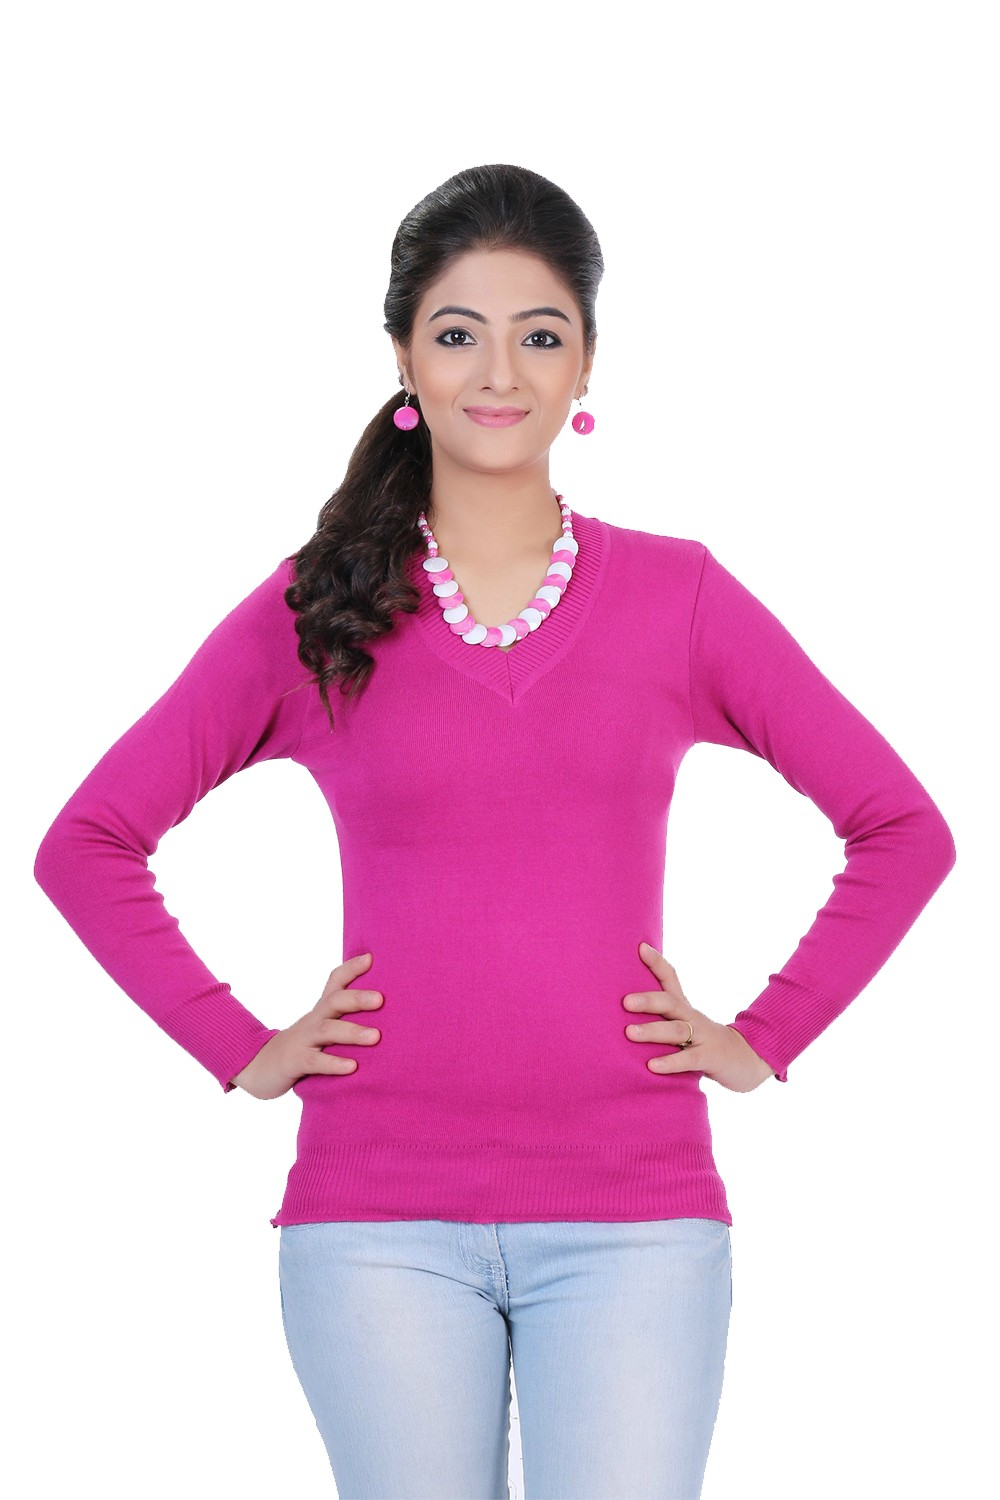 Renka Knitted Winter Pullover top - Pink Color - Women causal Wear